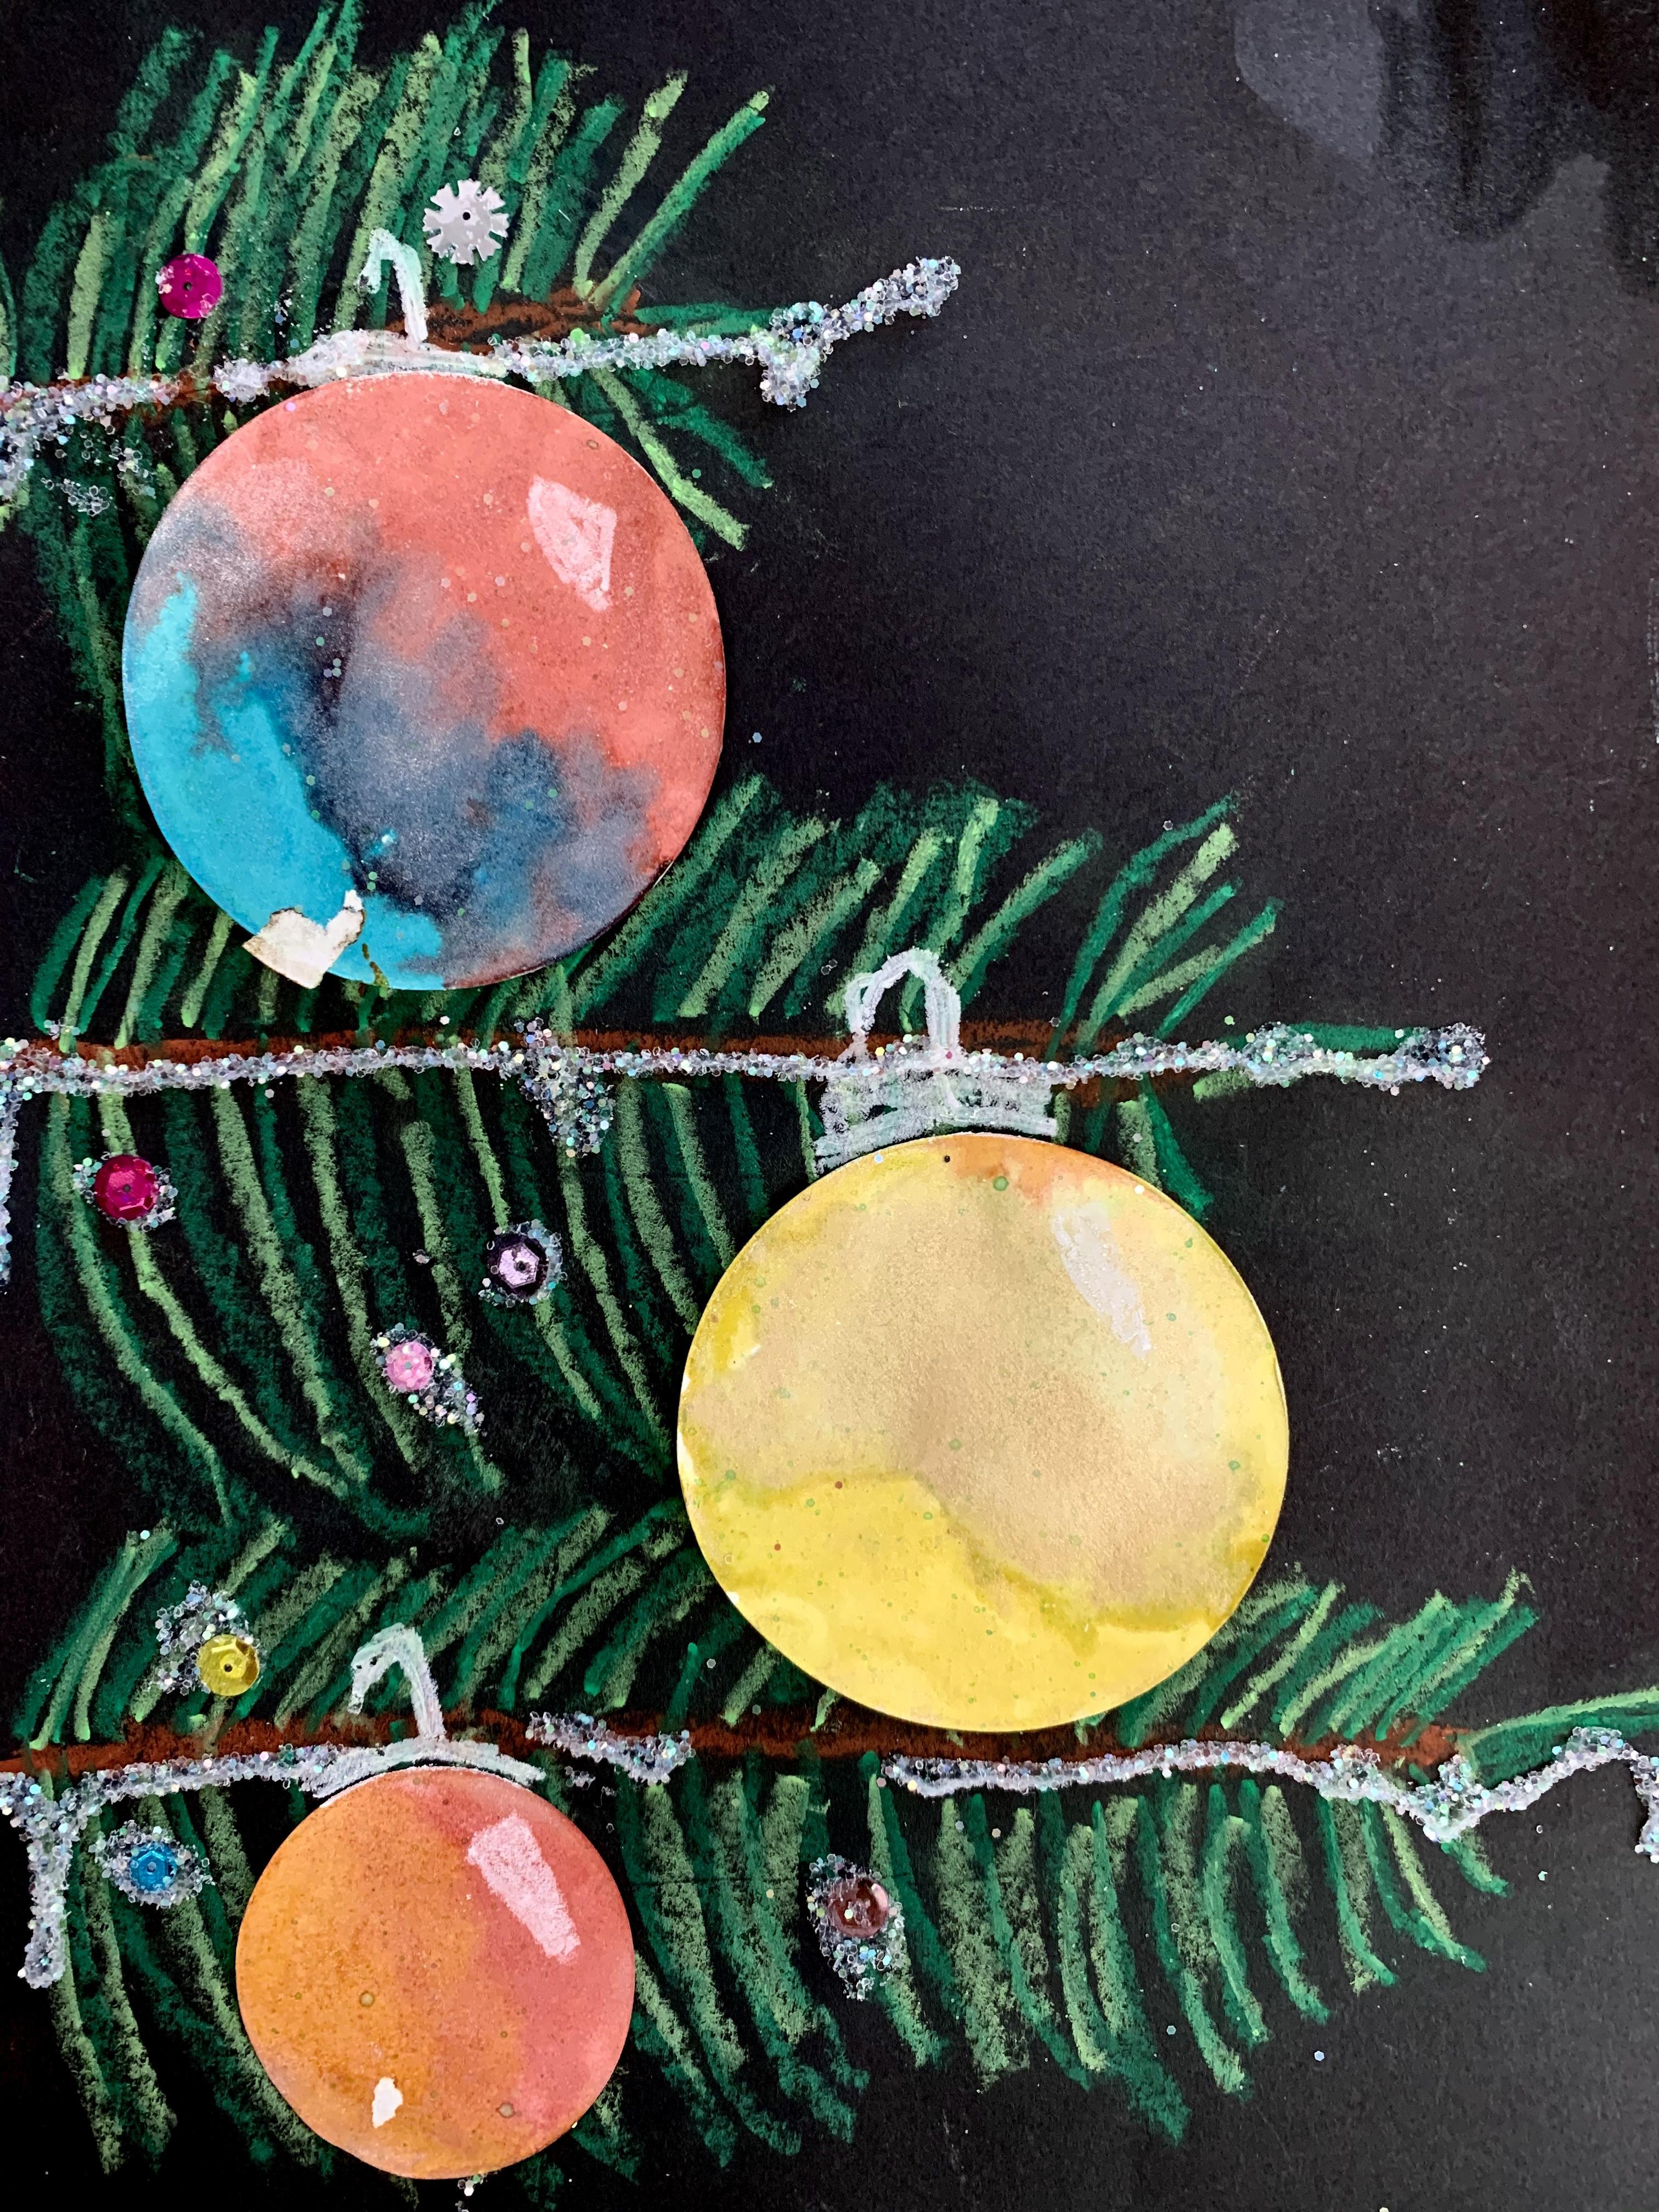 Pine Tree with Ornament 4